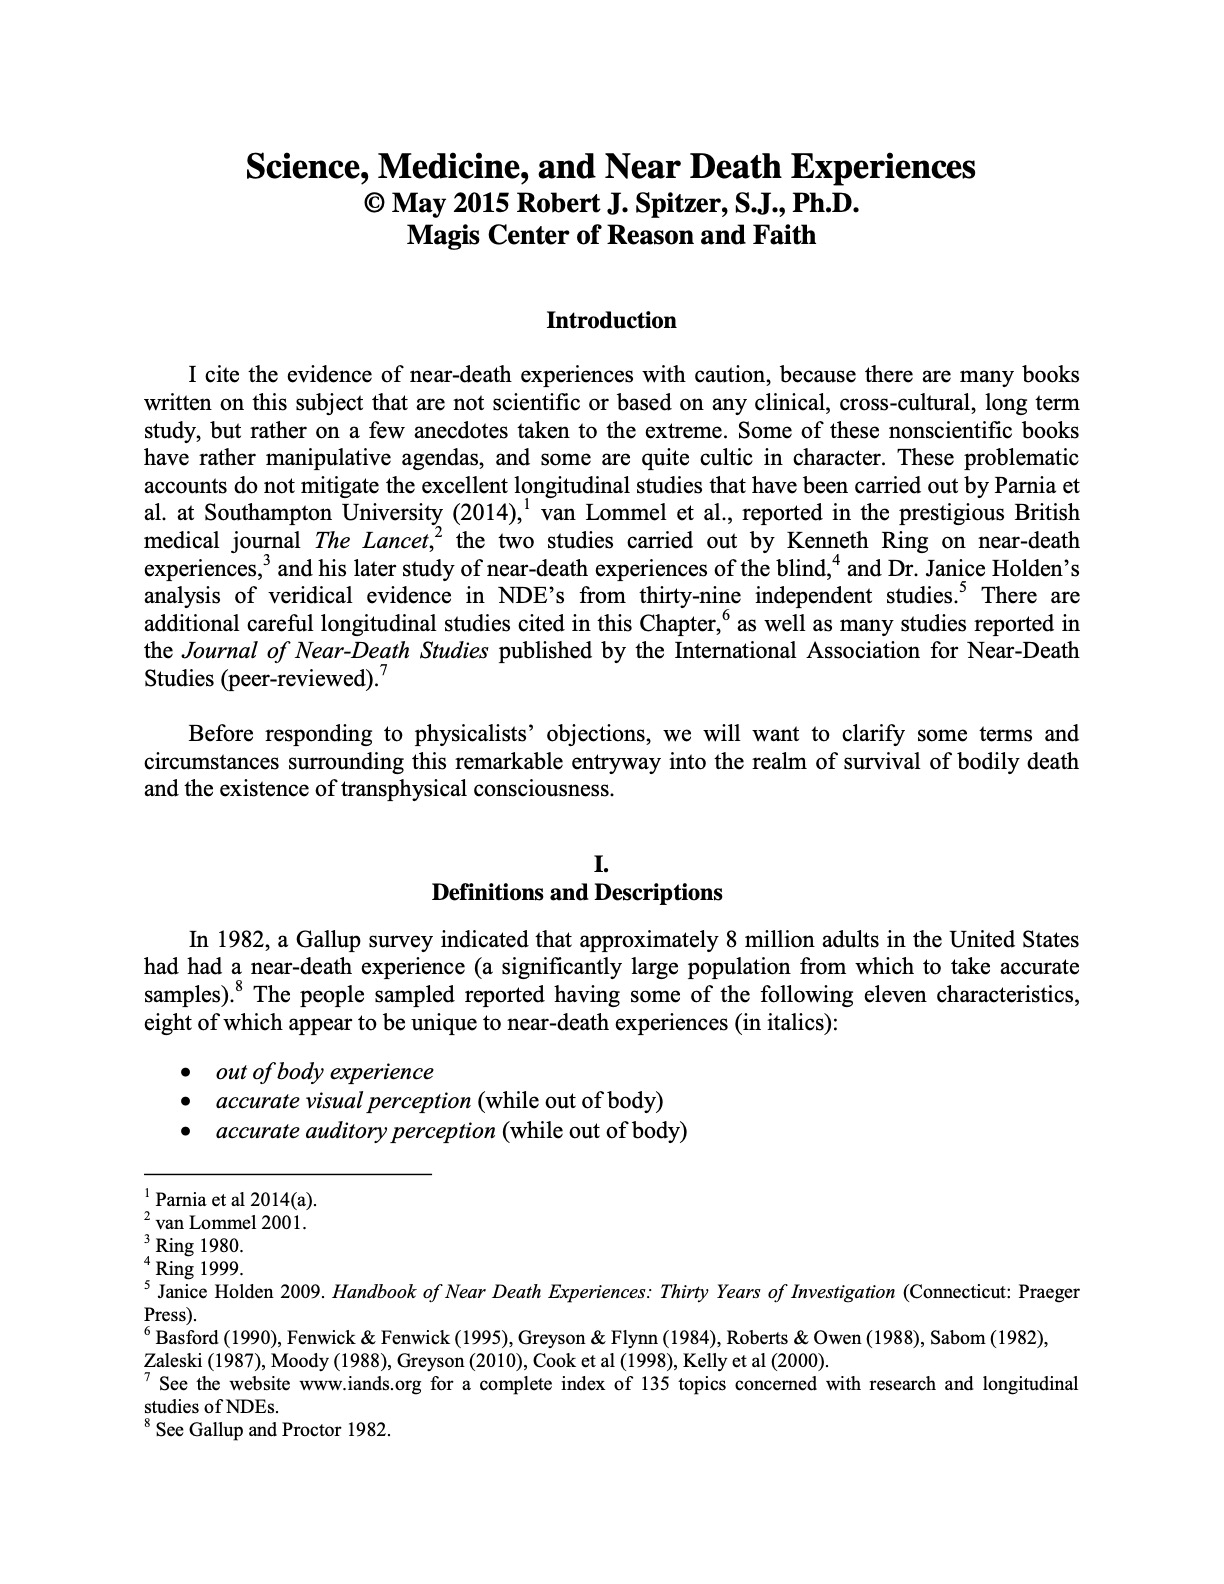 Science_Medicine_and_NDEs_First Page